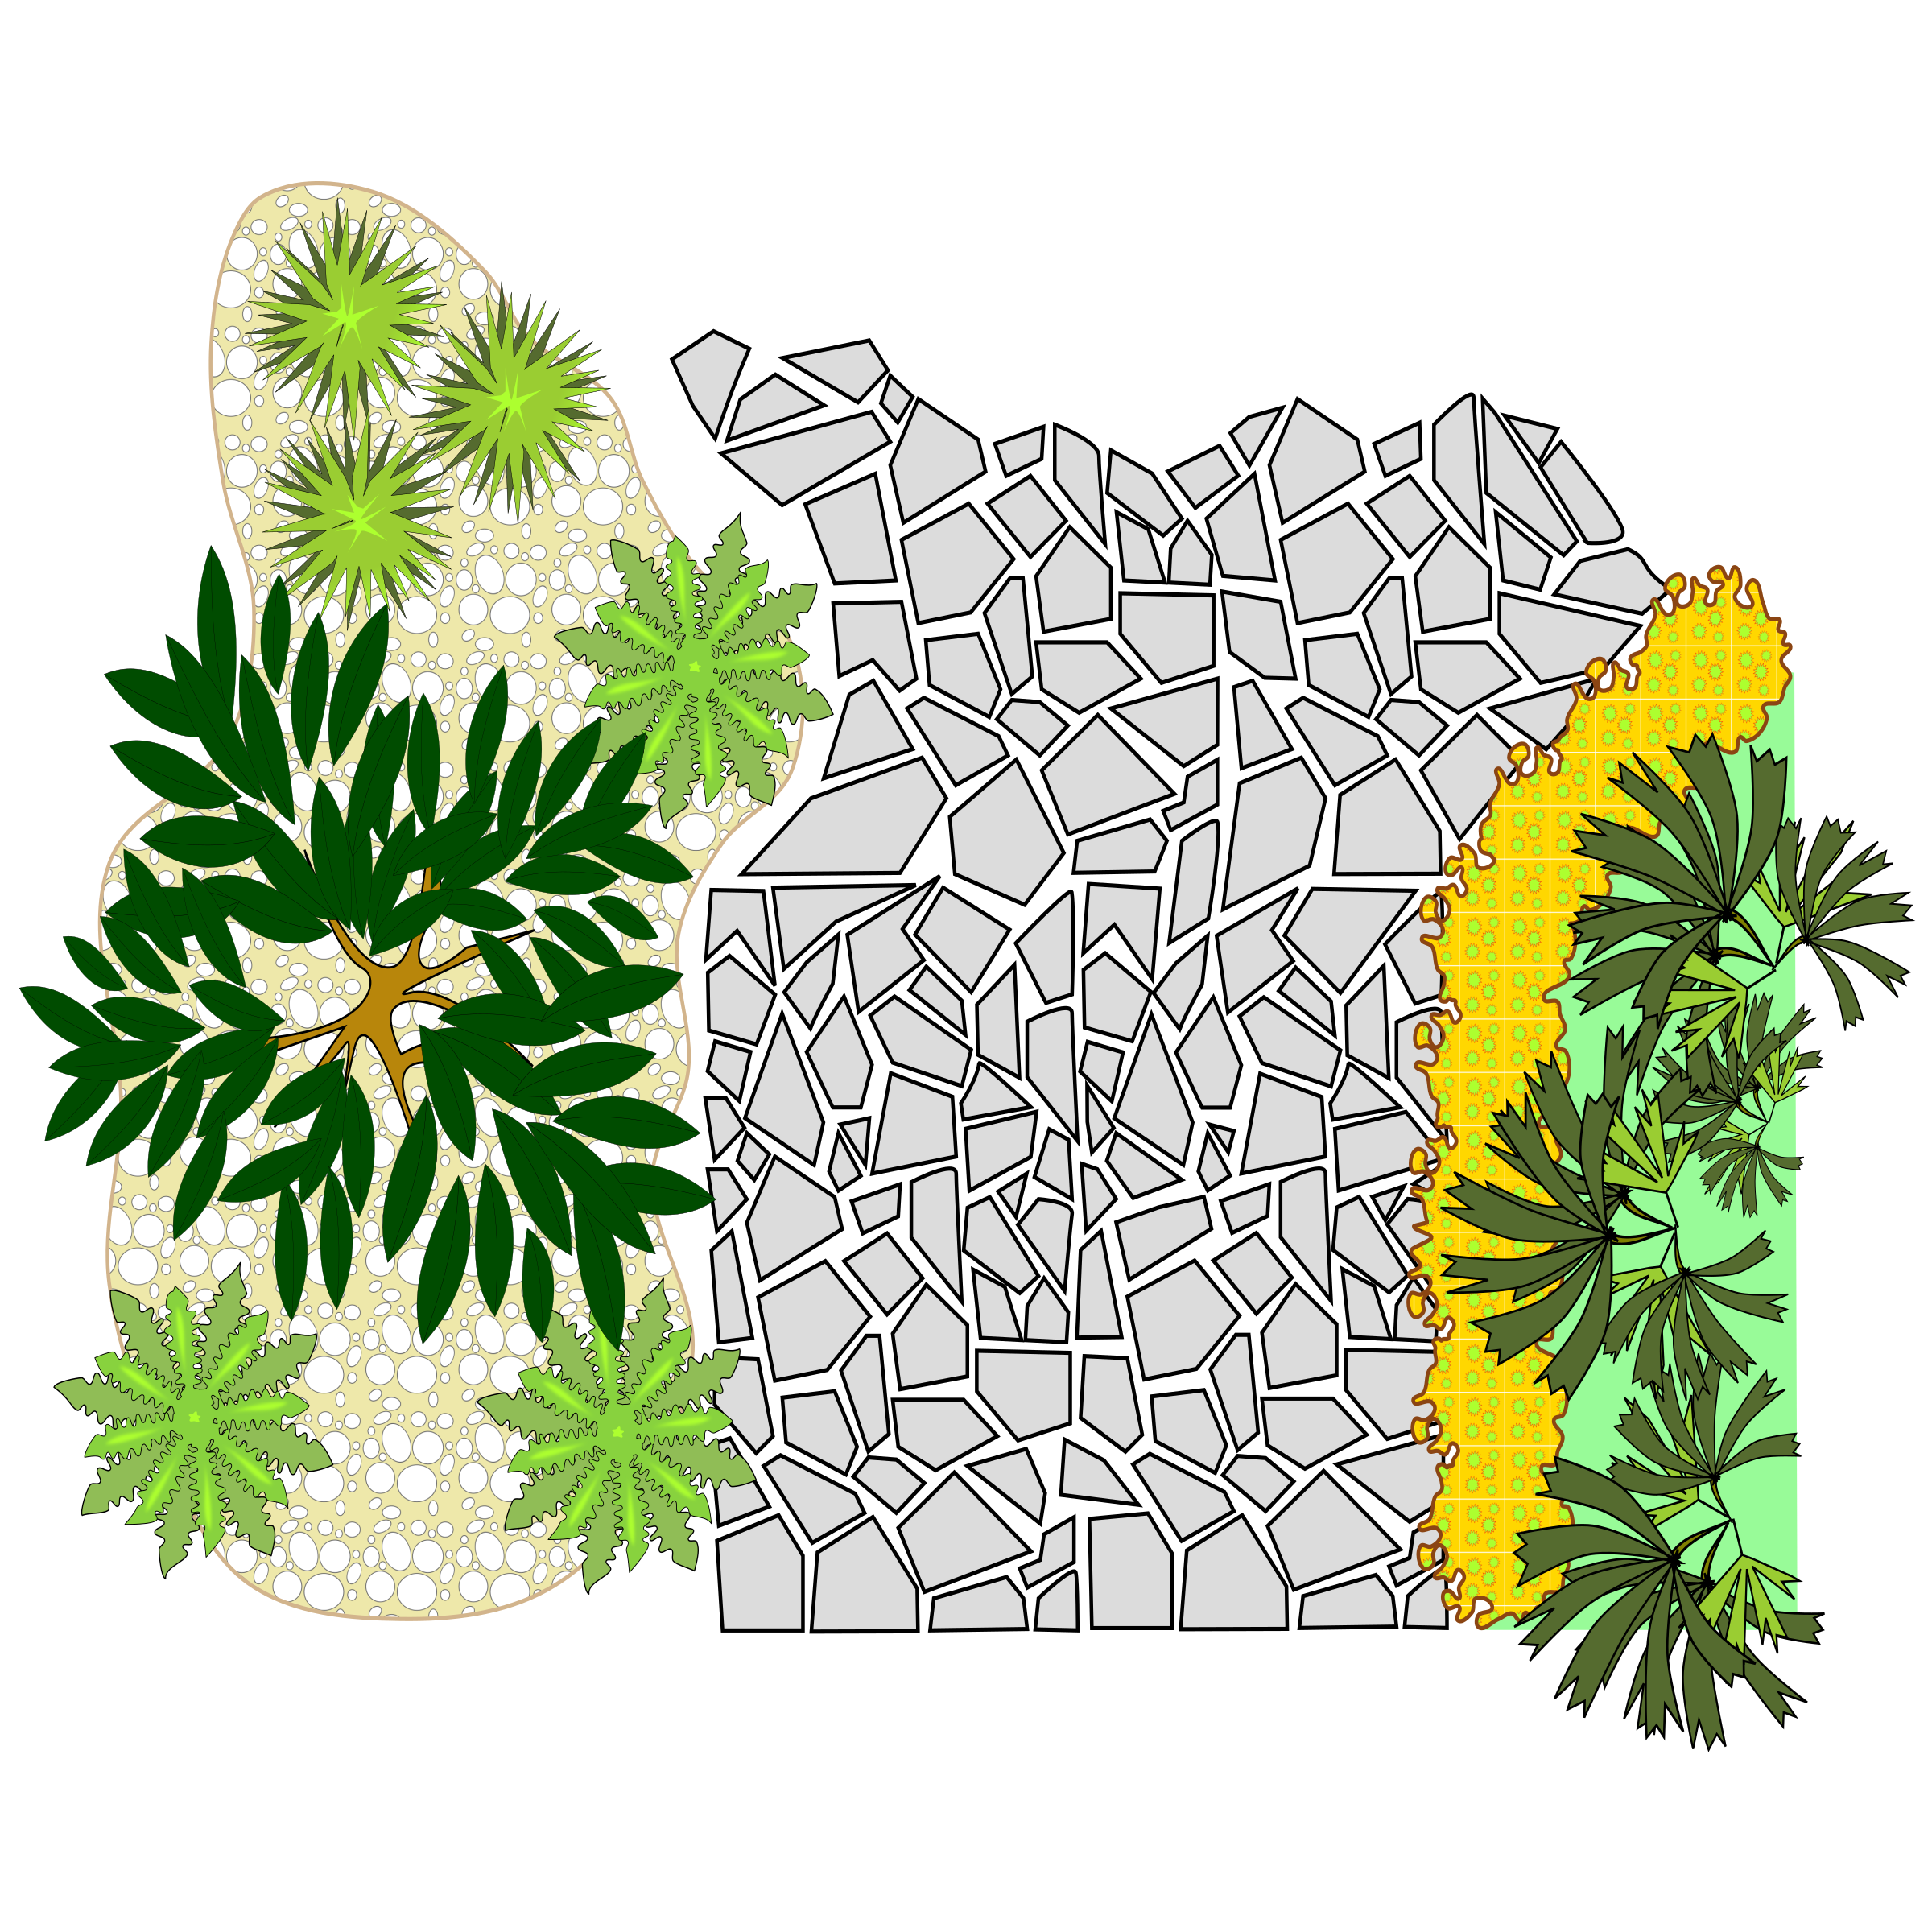 Landscaping clipart. Big image png